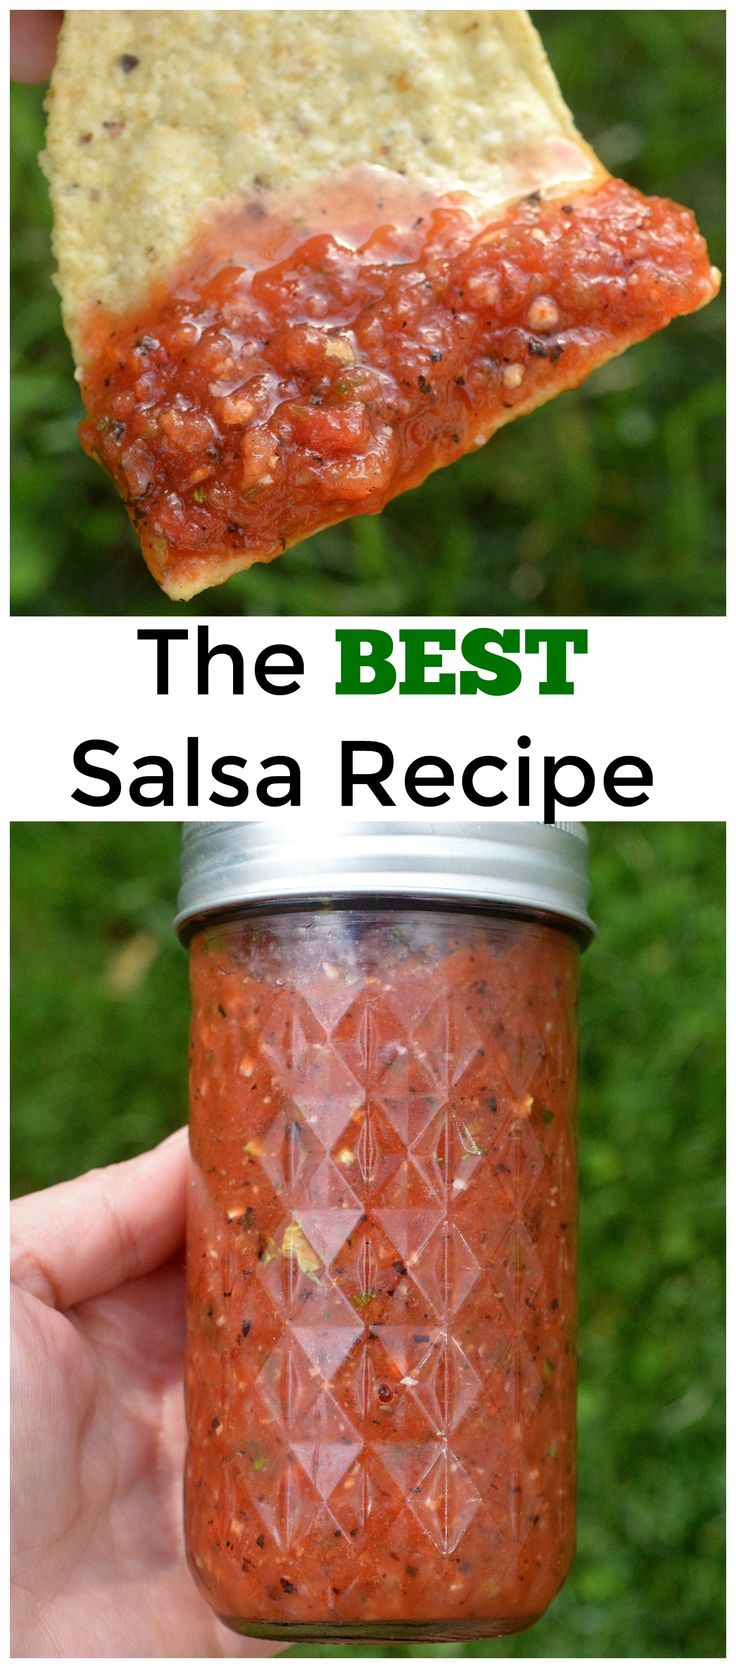 The BEST Salsa Recipe - SO good, that you may just want to drink it!